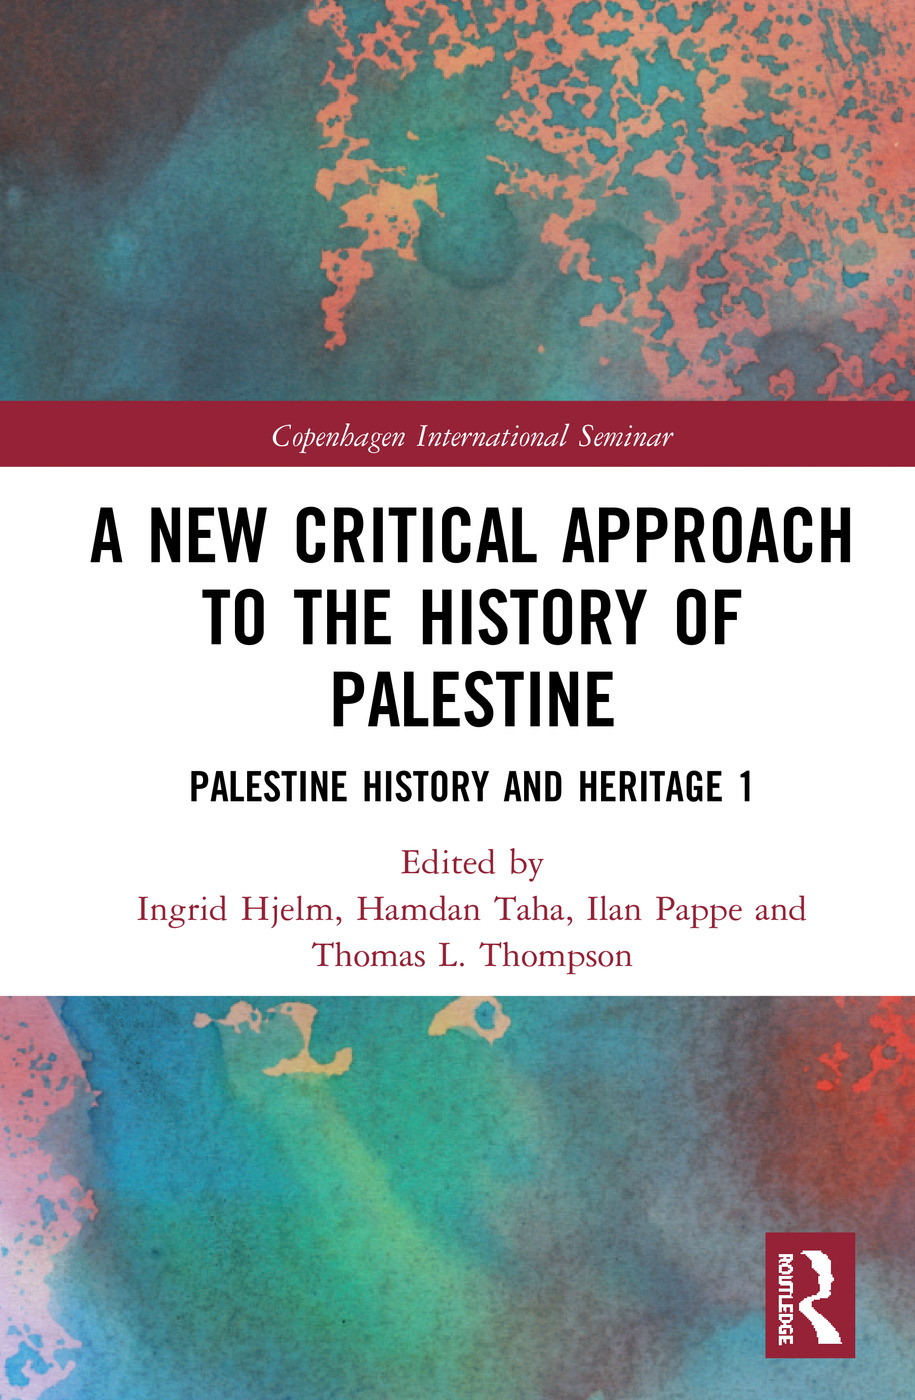 A New Critical Approach to the History of Palestine: Palestine History and Heritage Project 1 book cover